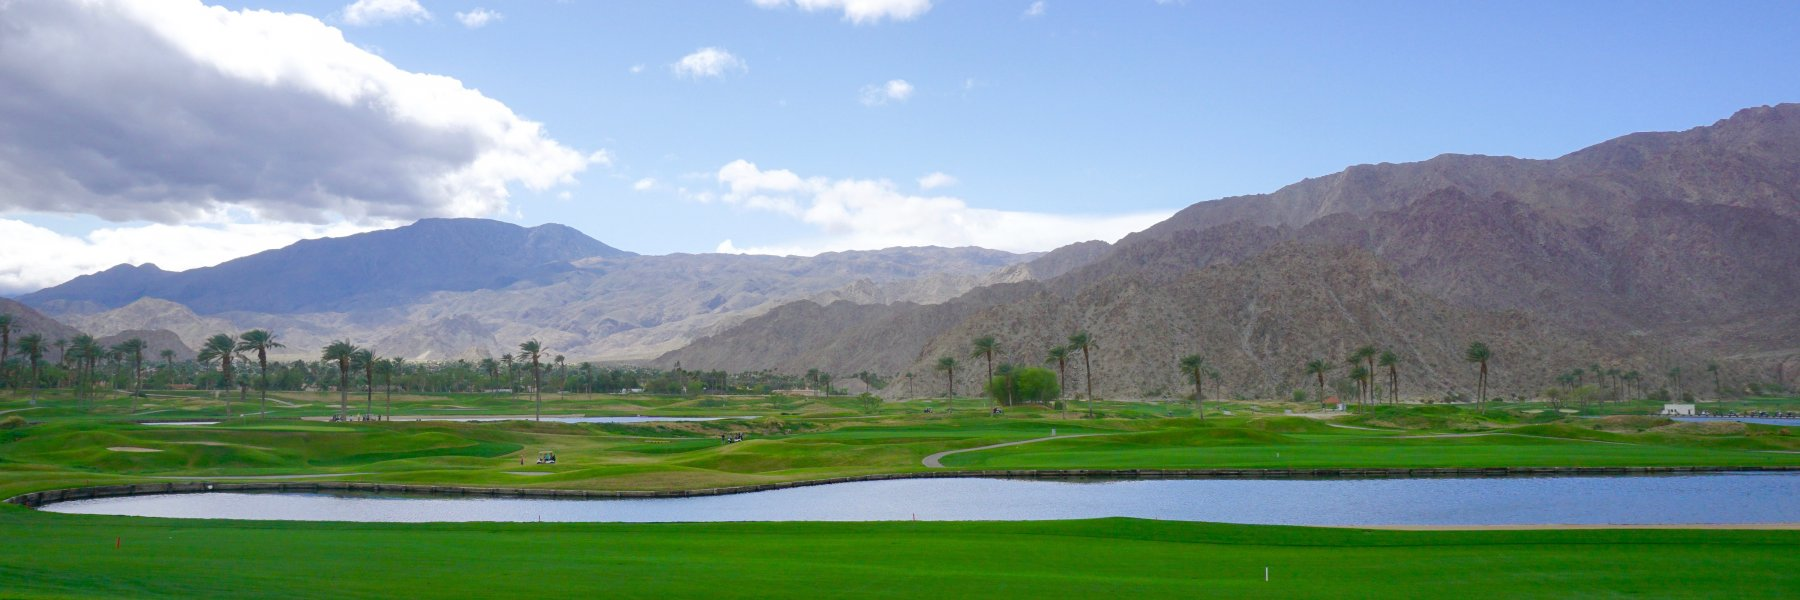 Santa Rosa Cove is a community of homes in La Quinta California